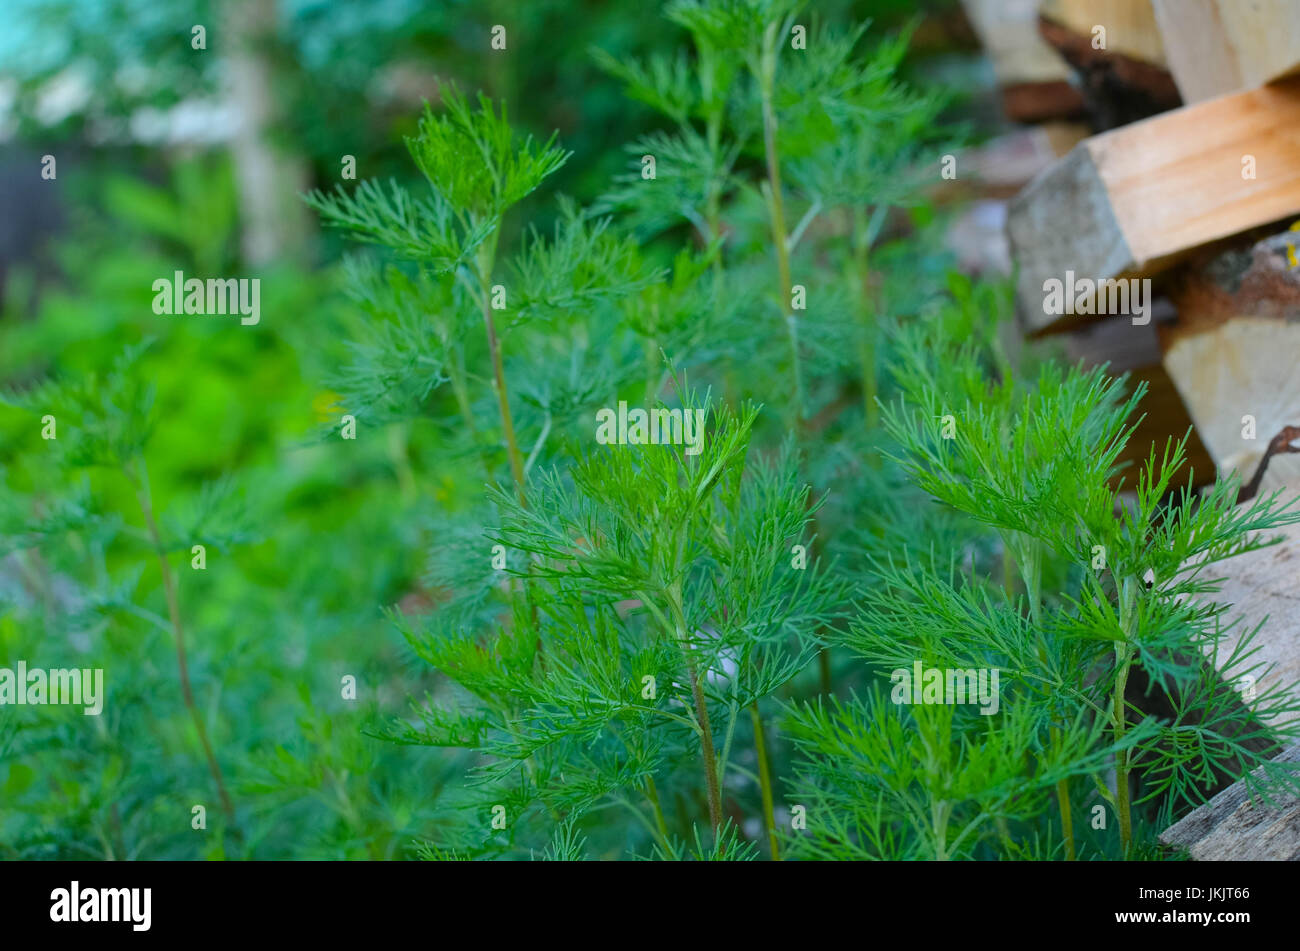 camomile green leaves without flowers in spring garden stock photo